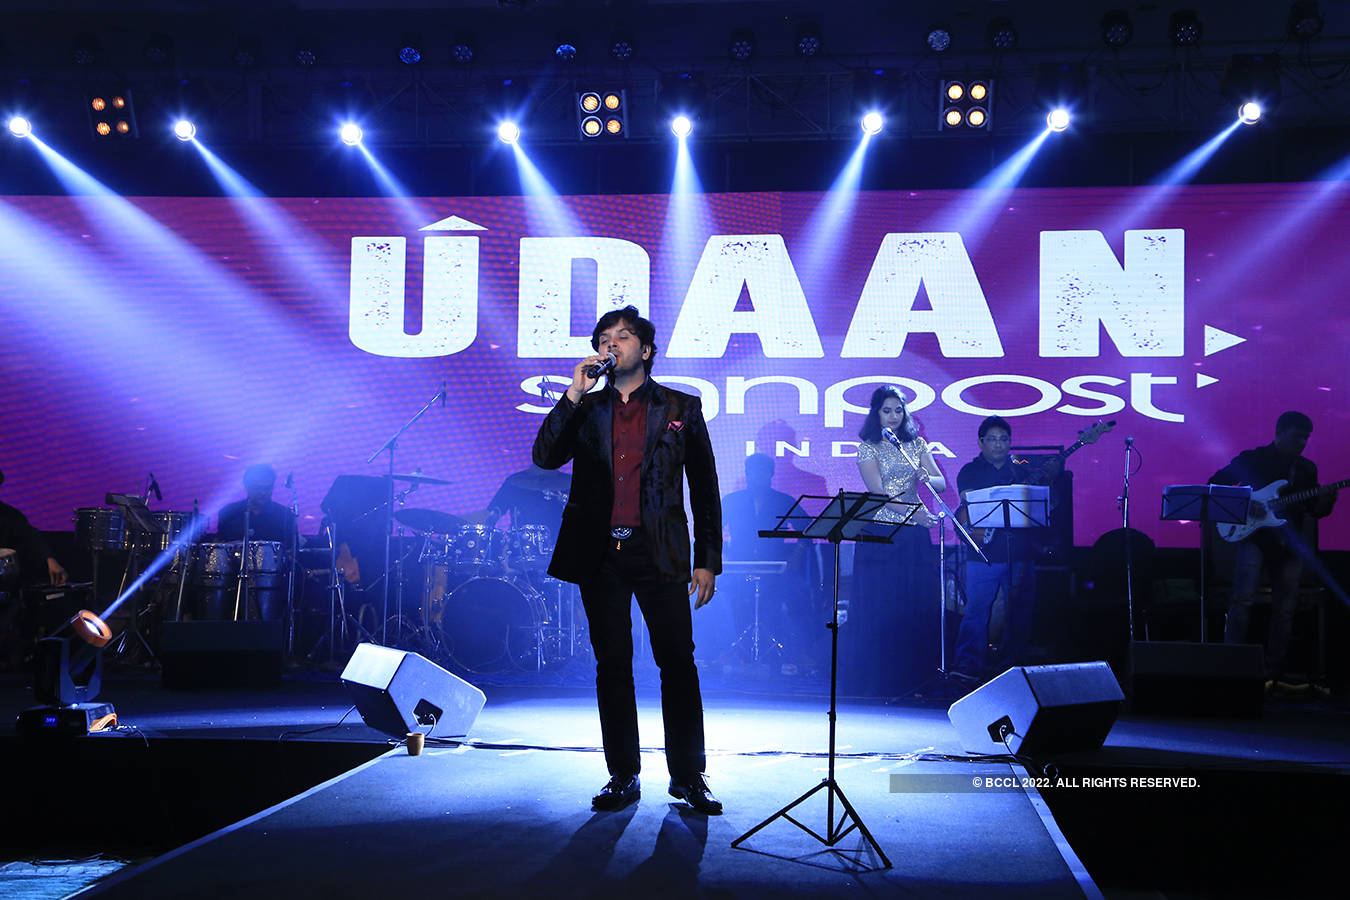 Javed Ali performs in the city